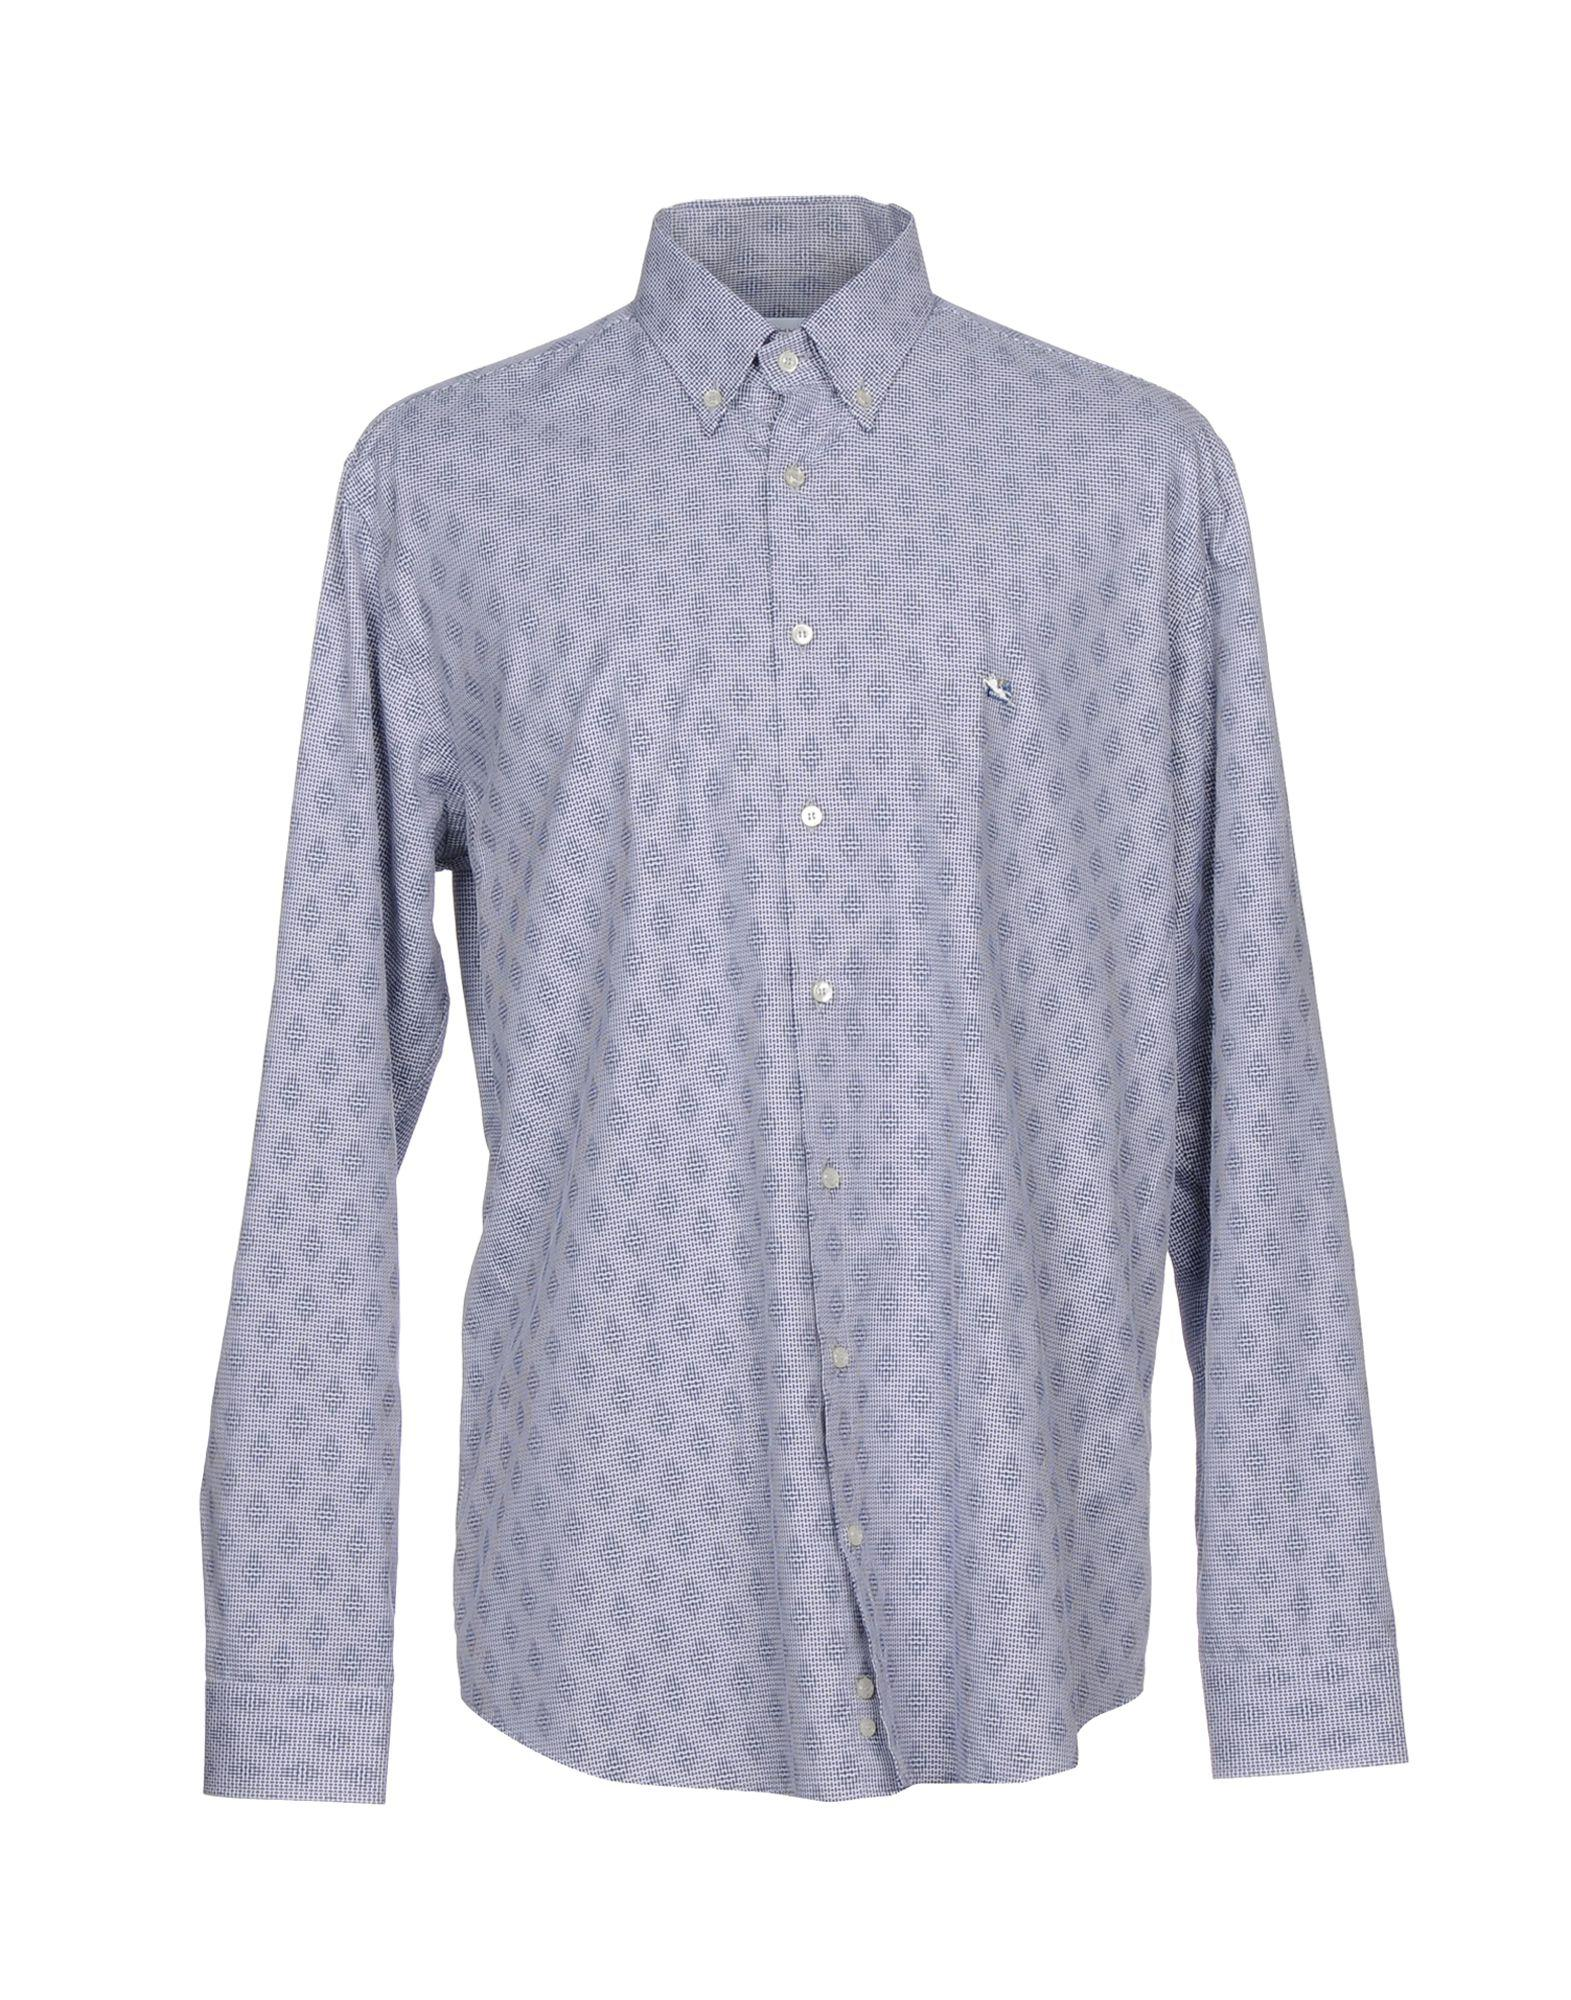 Etro Patterned Shirt In Dark Blue